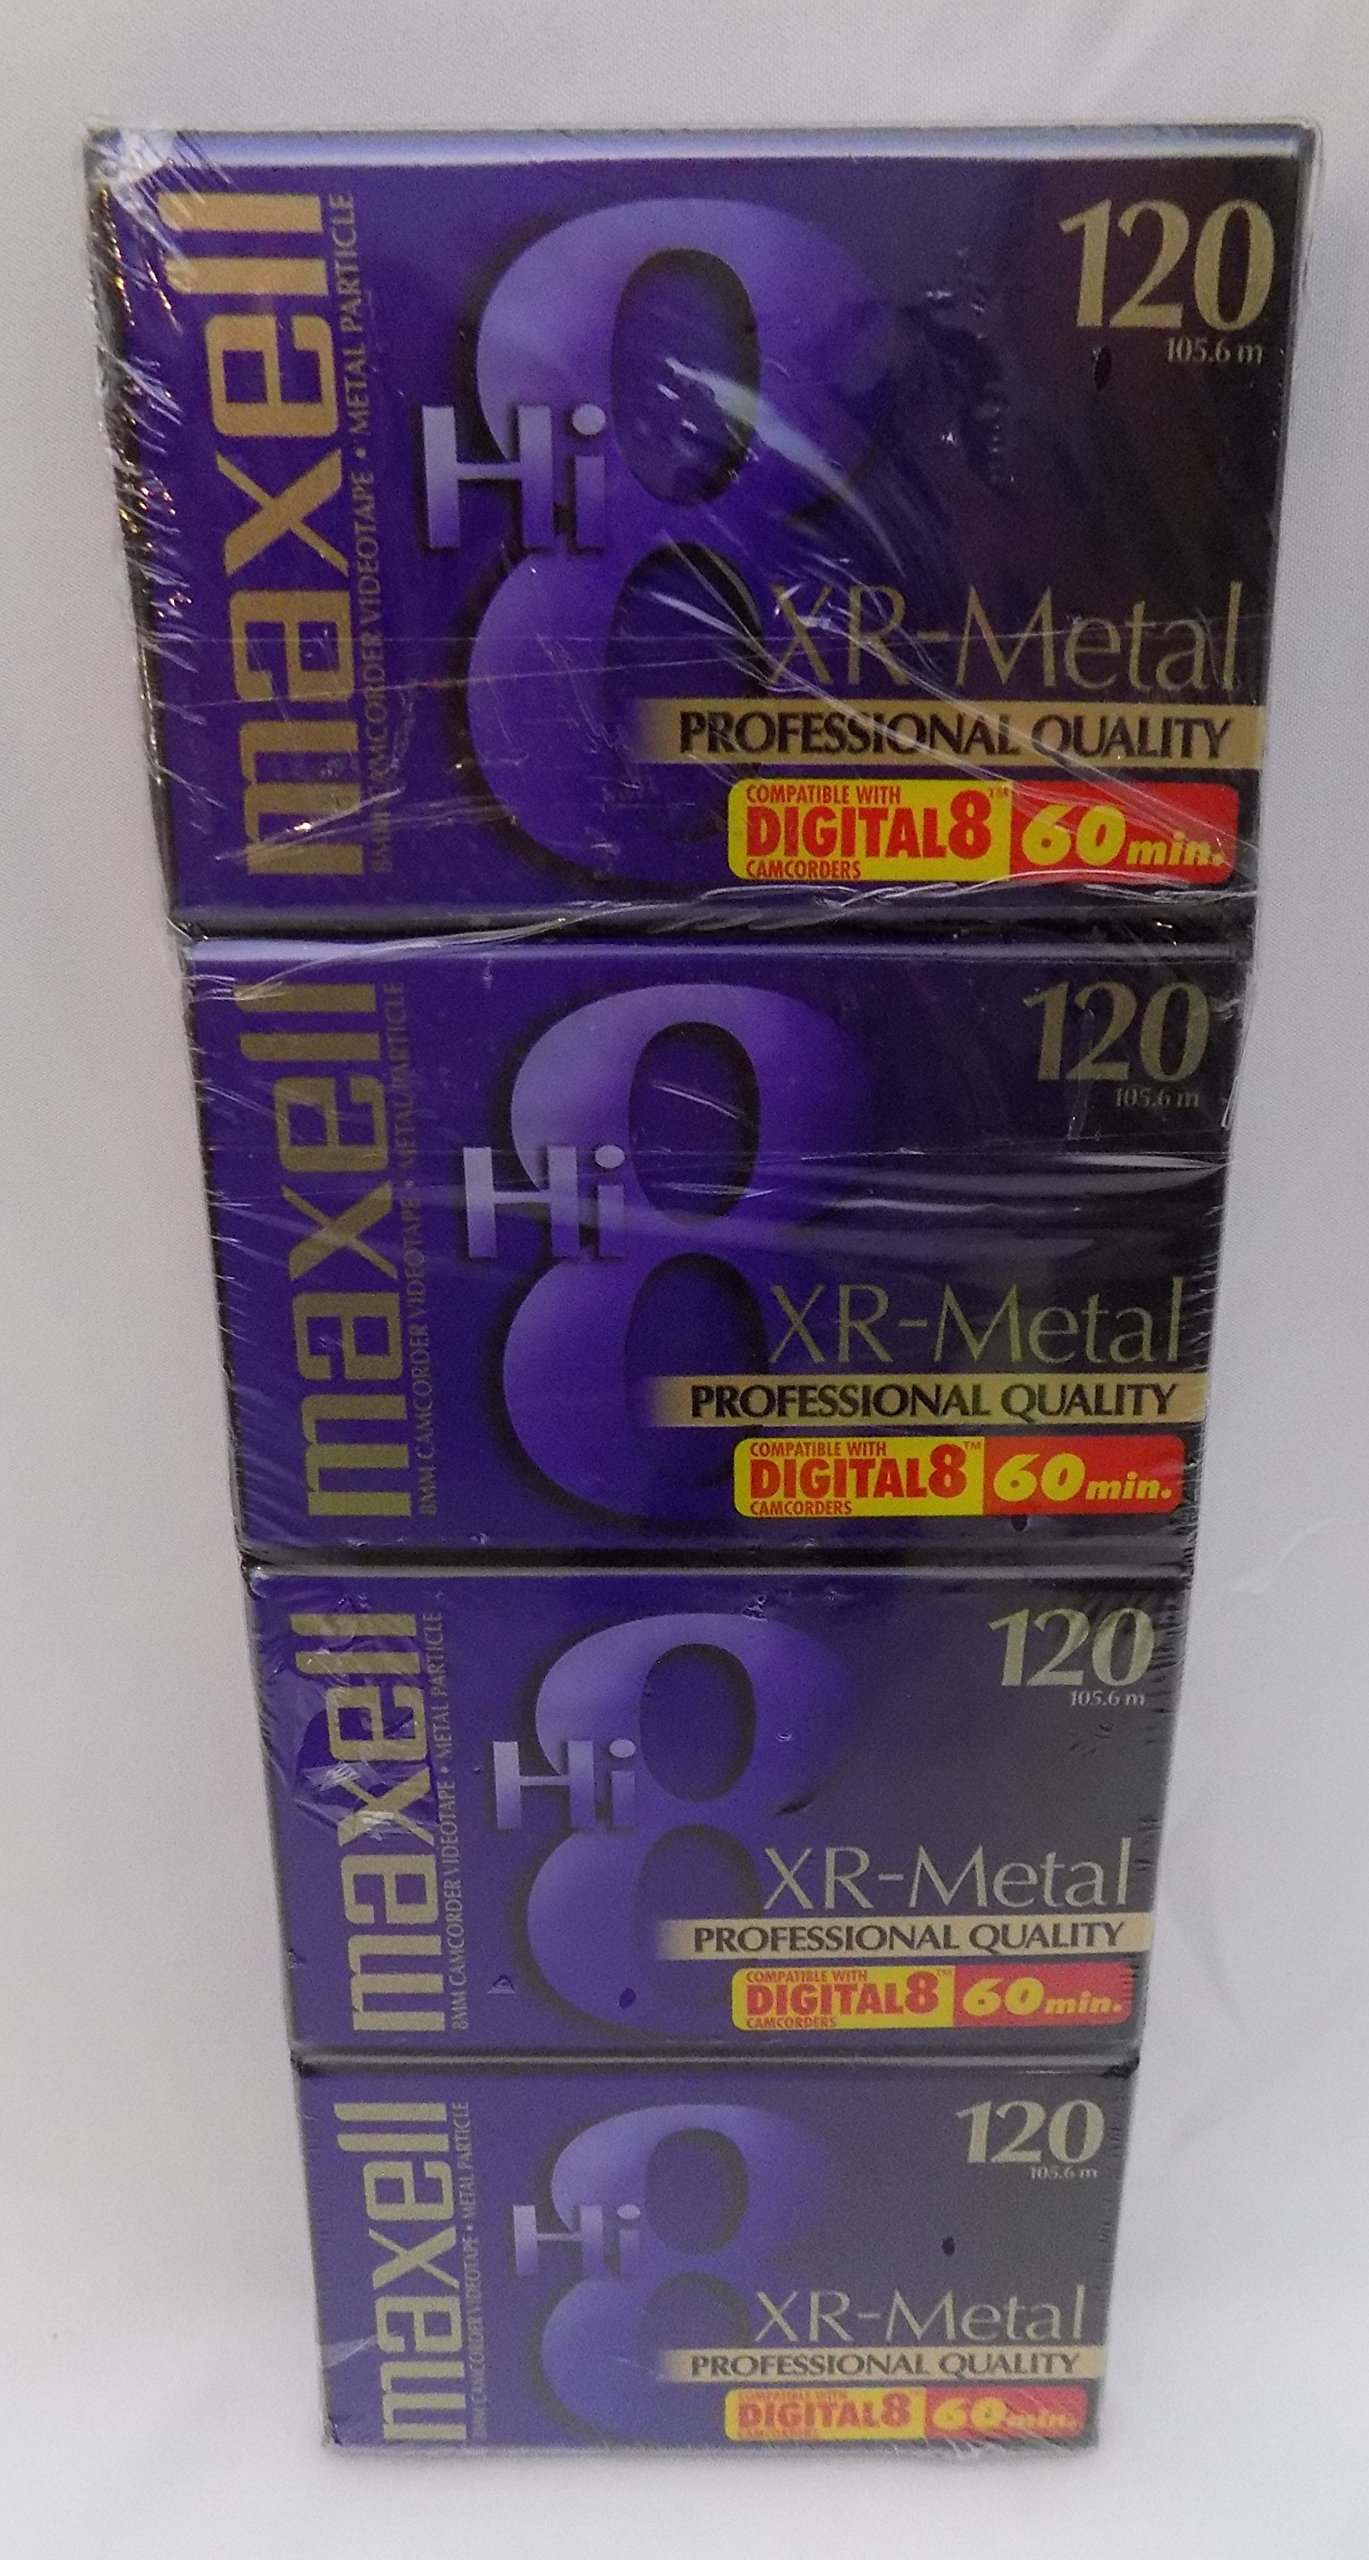 Maxell XR-Metal Professional Quality Hi 8 Camcorder Videotape 4 件装